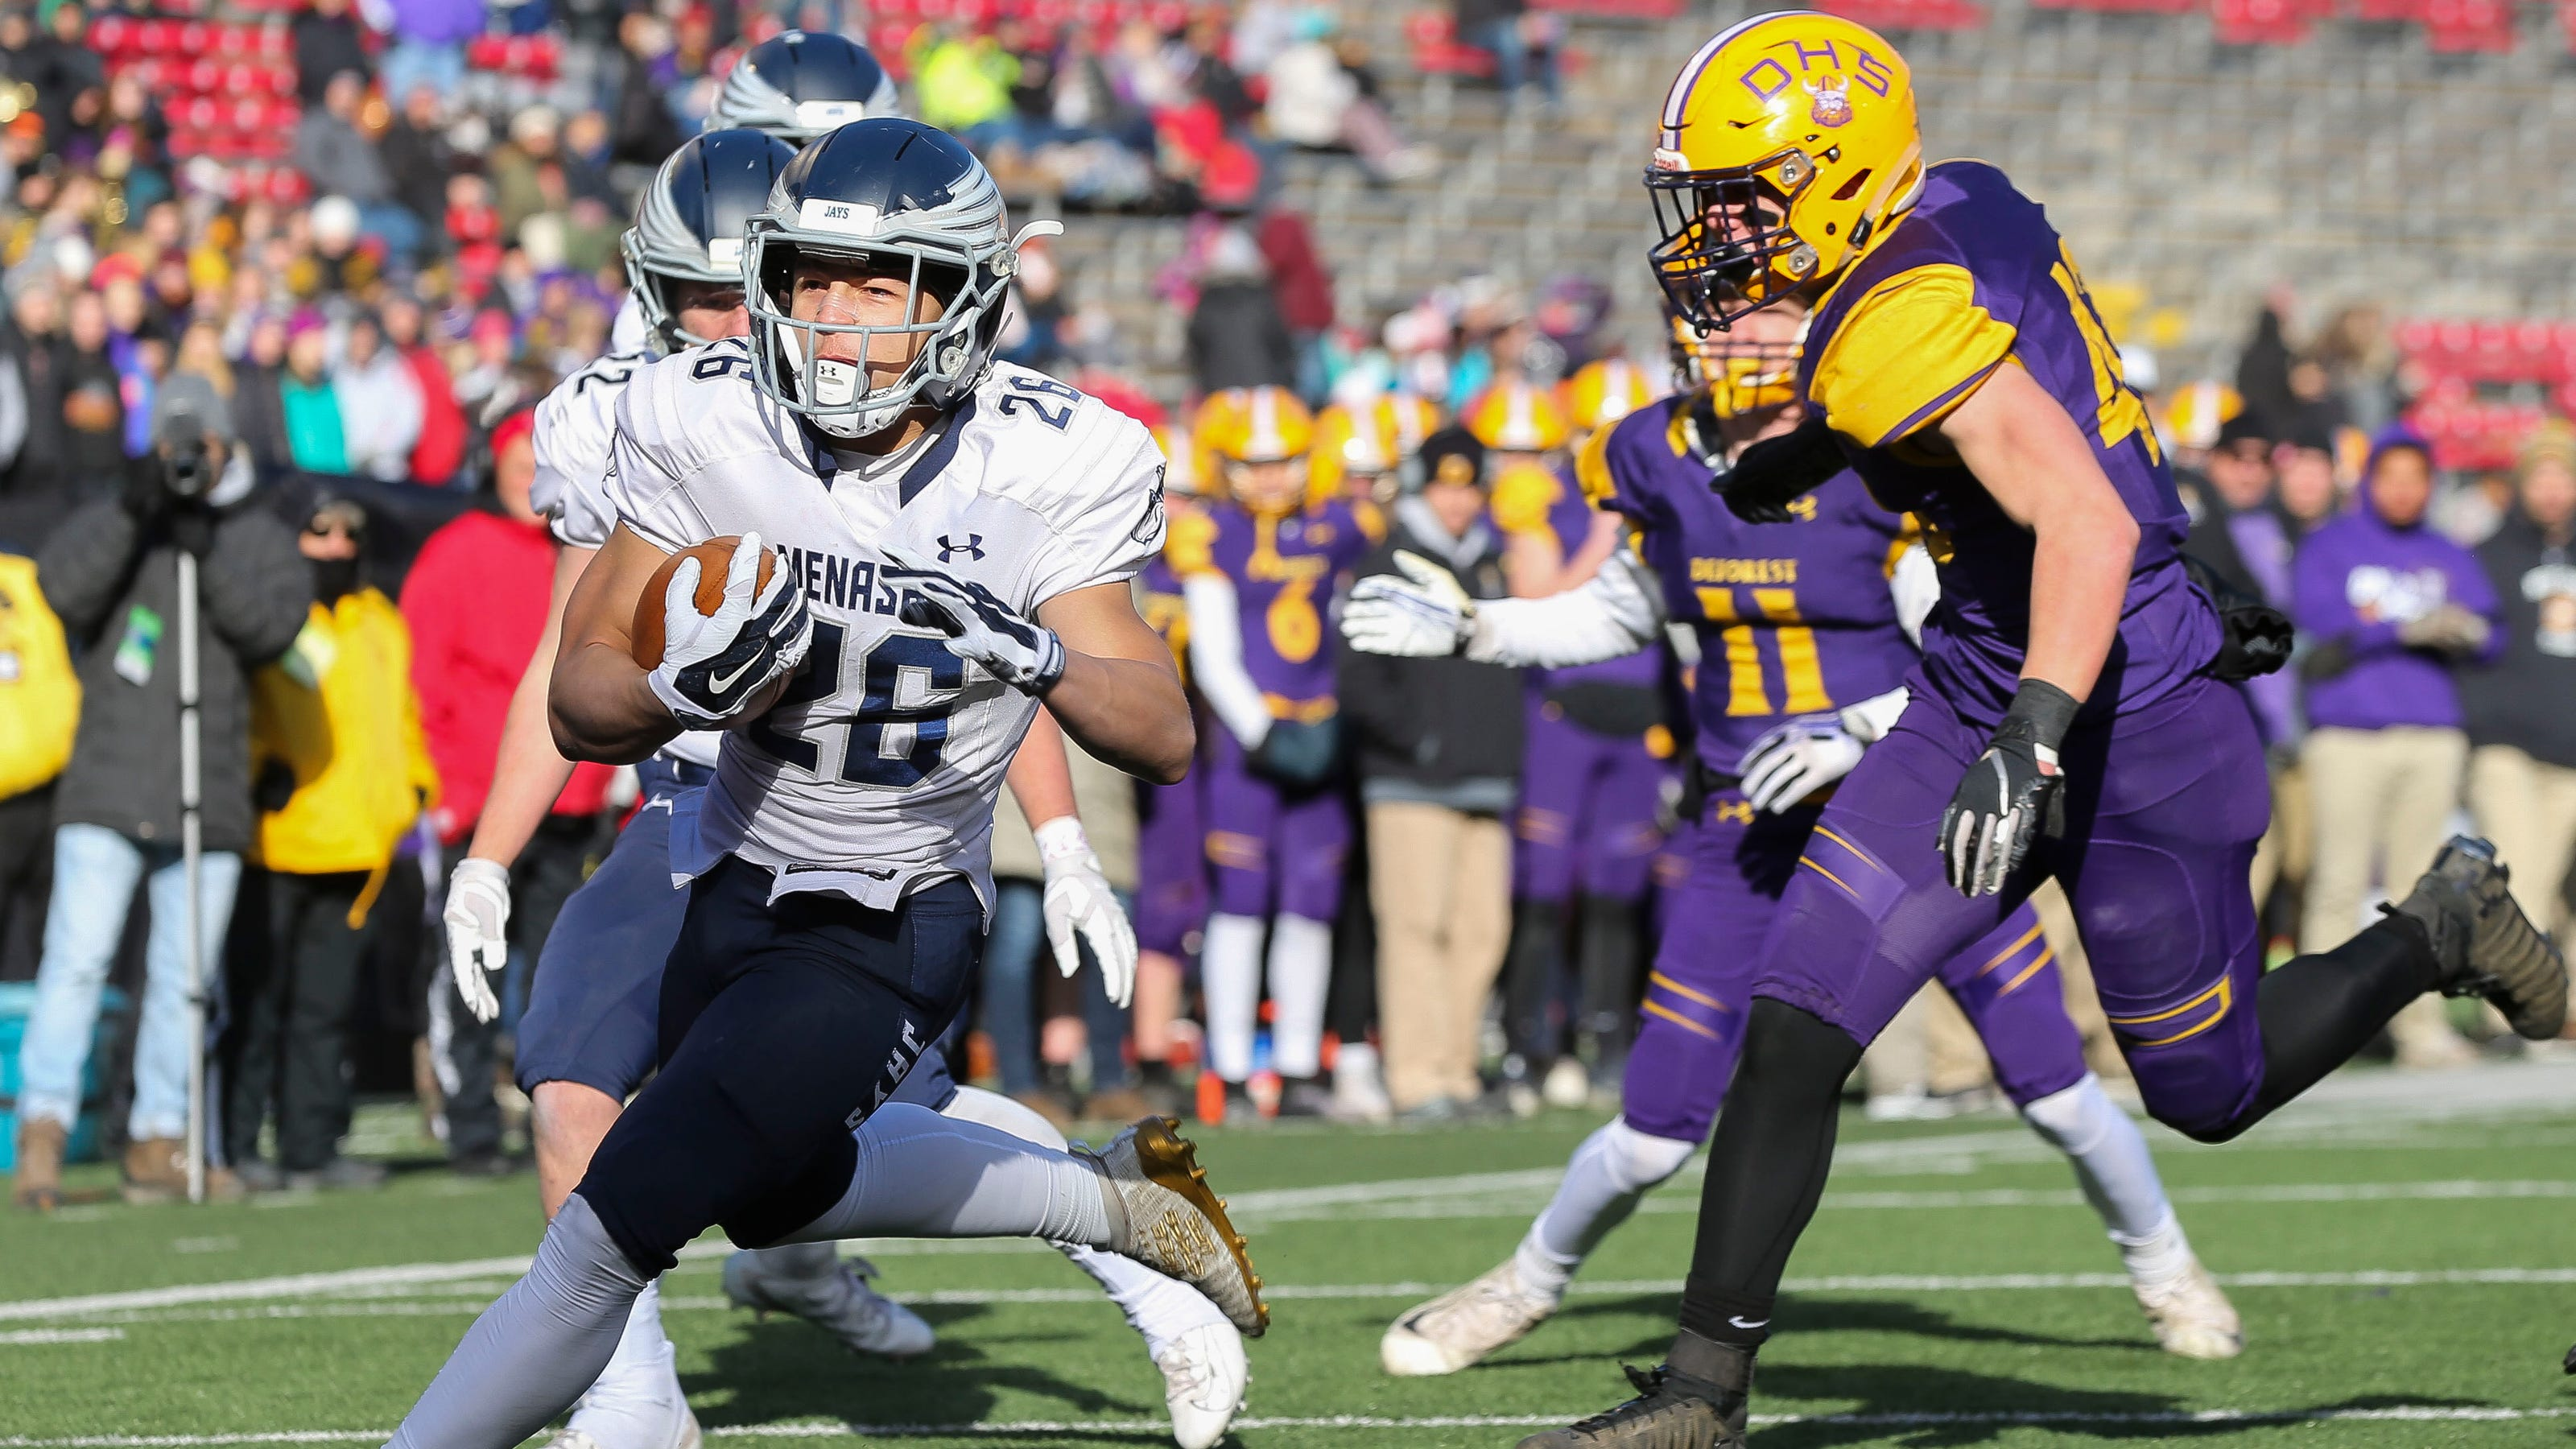 Wiaa State Football Muskego Brookfield East Deforest Prevail In Title Games